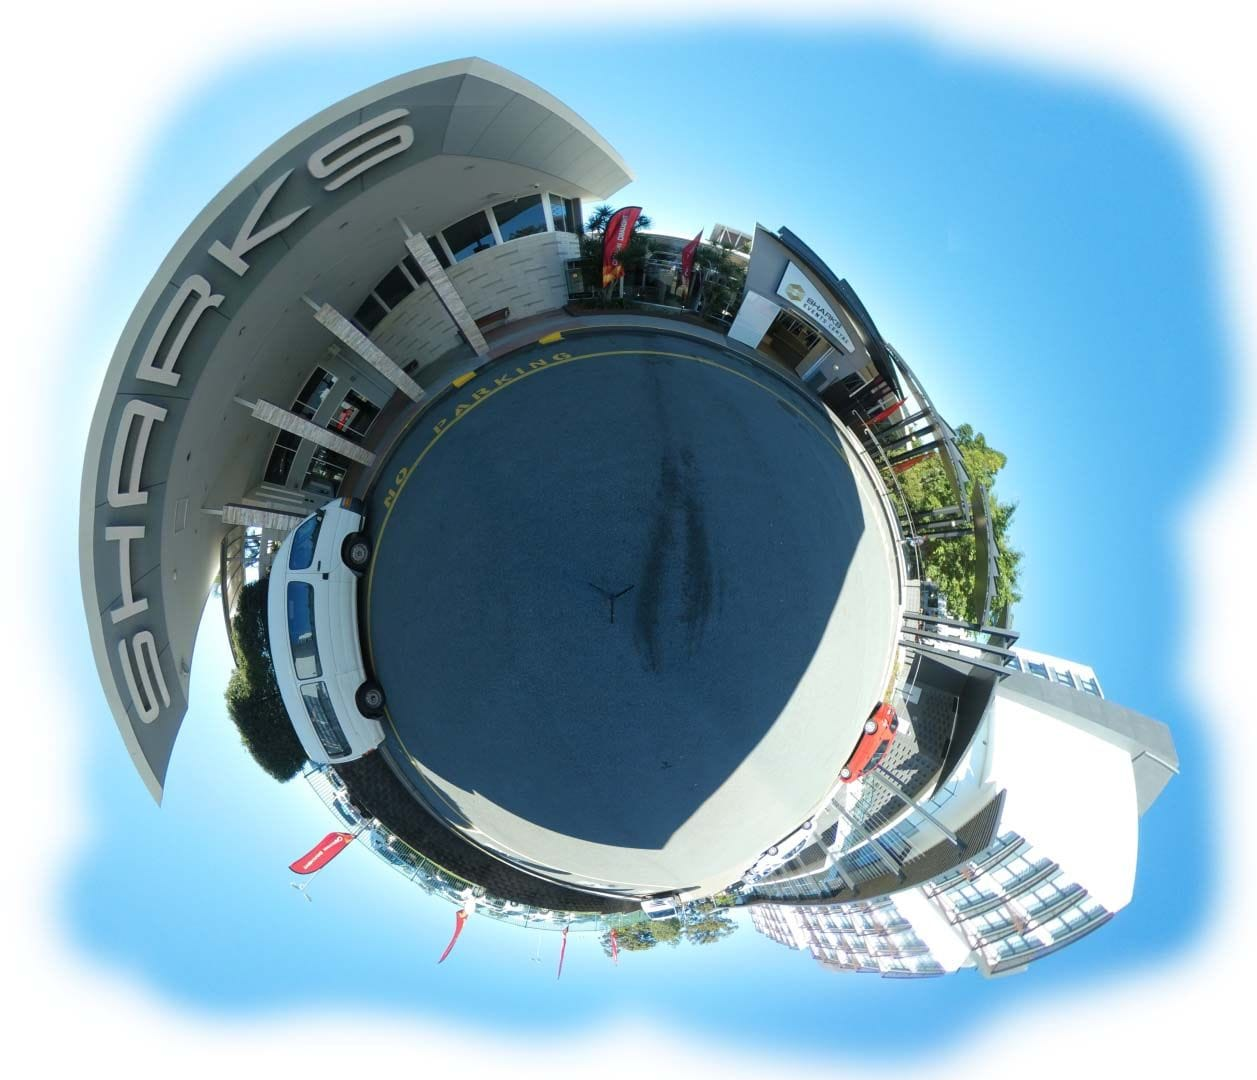 360 Degree Video Production